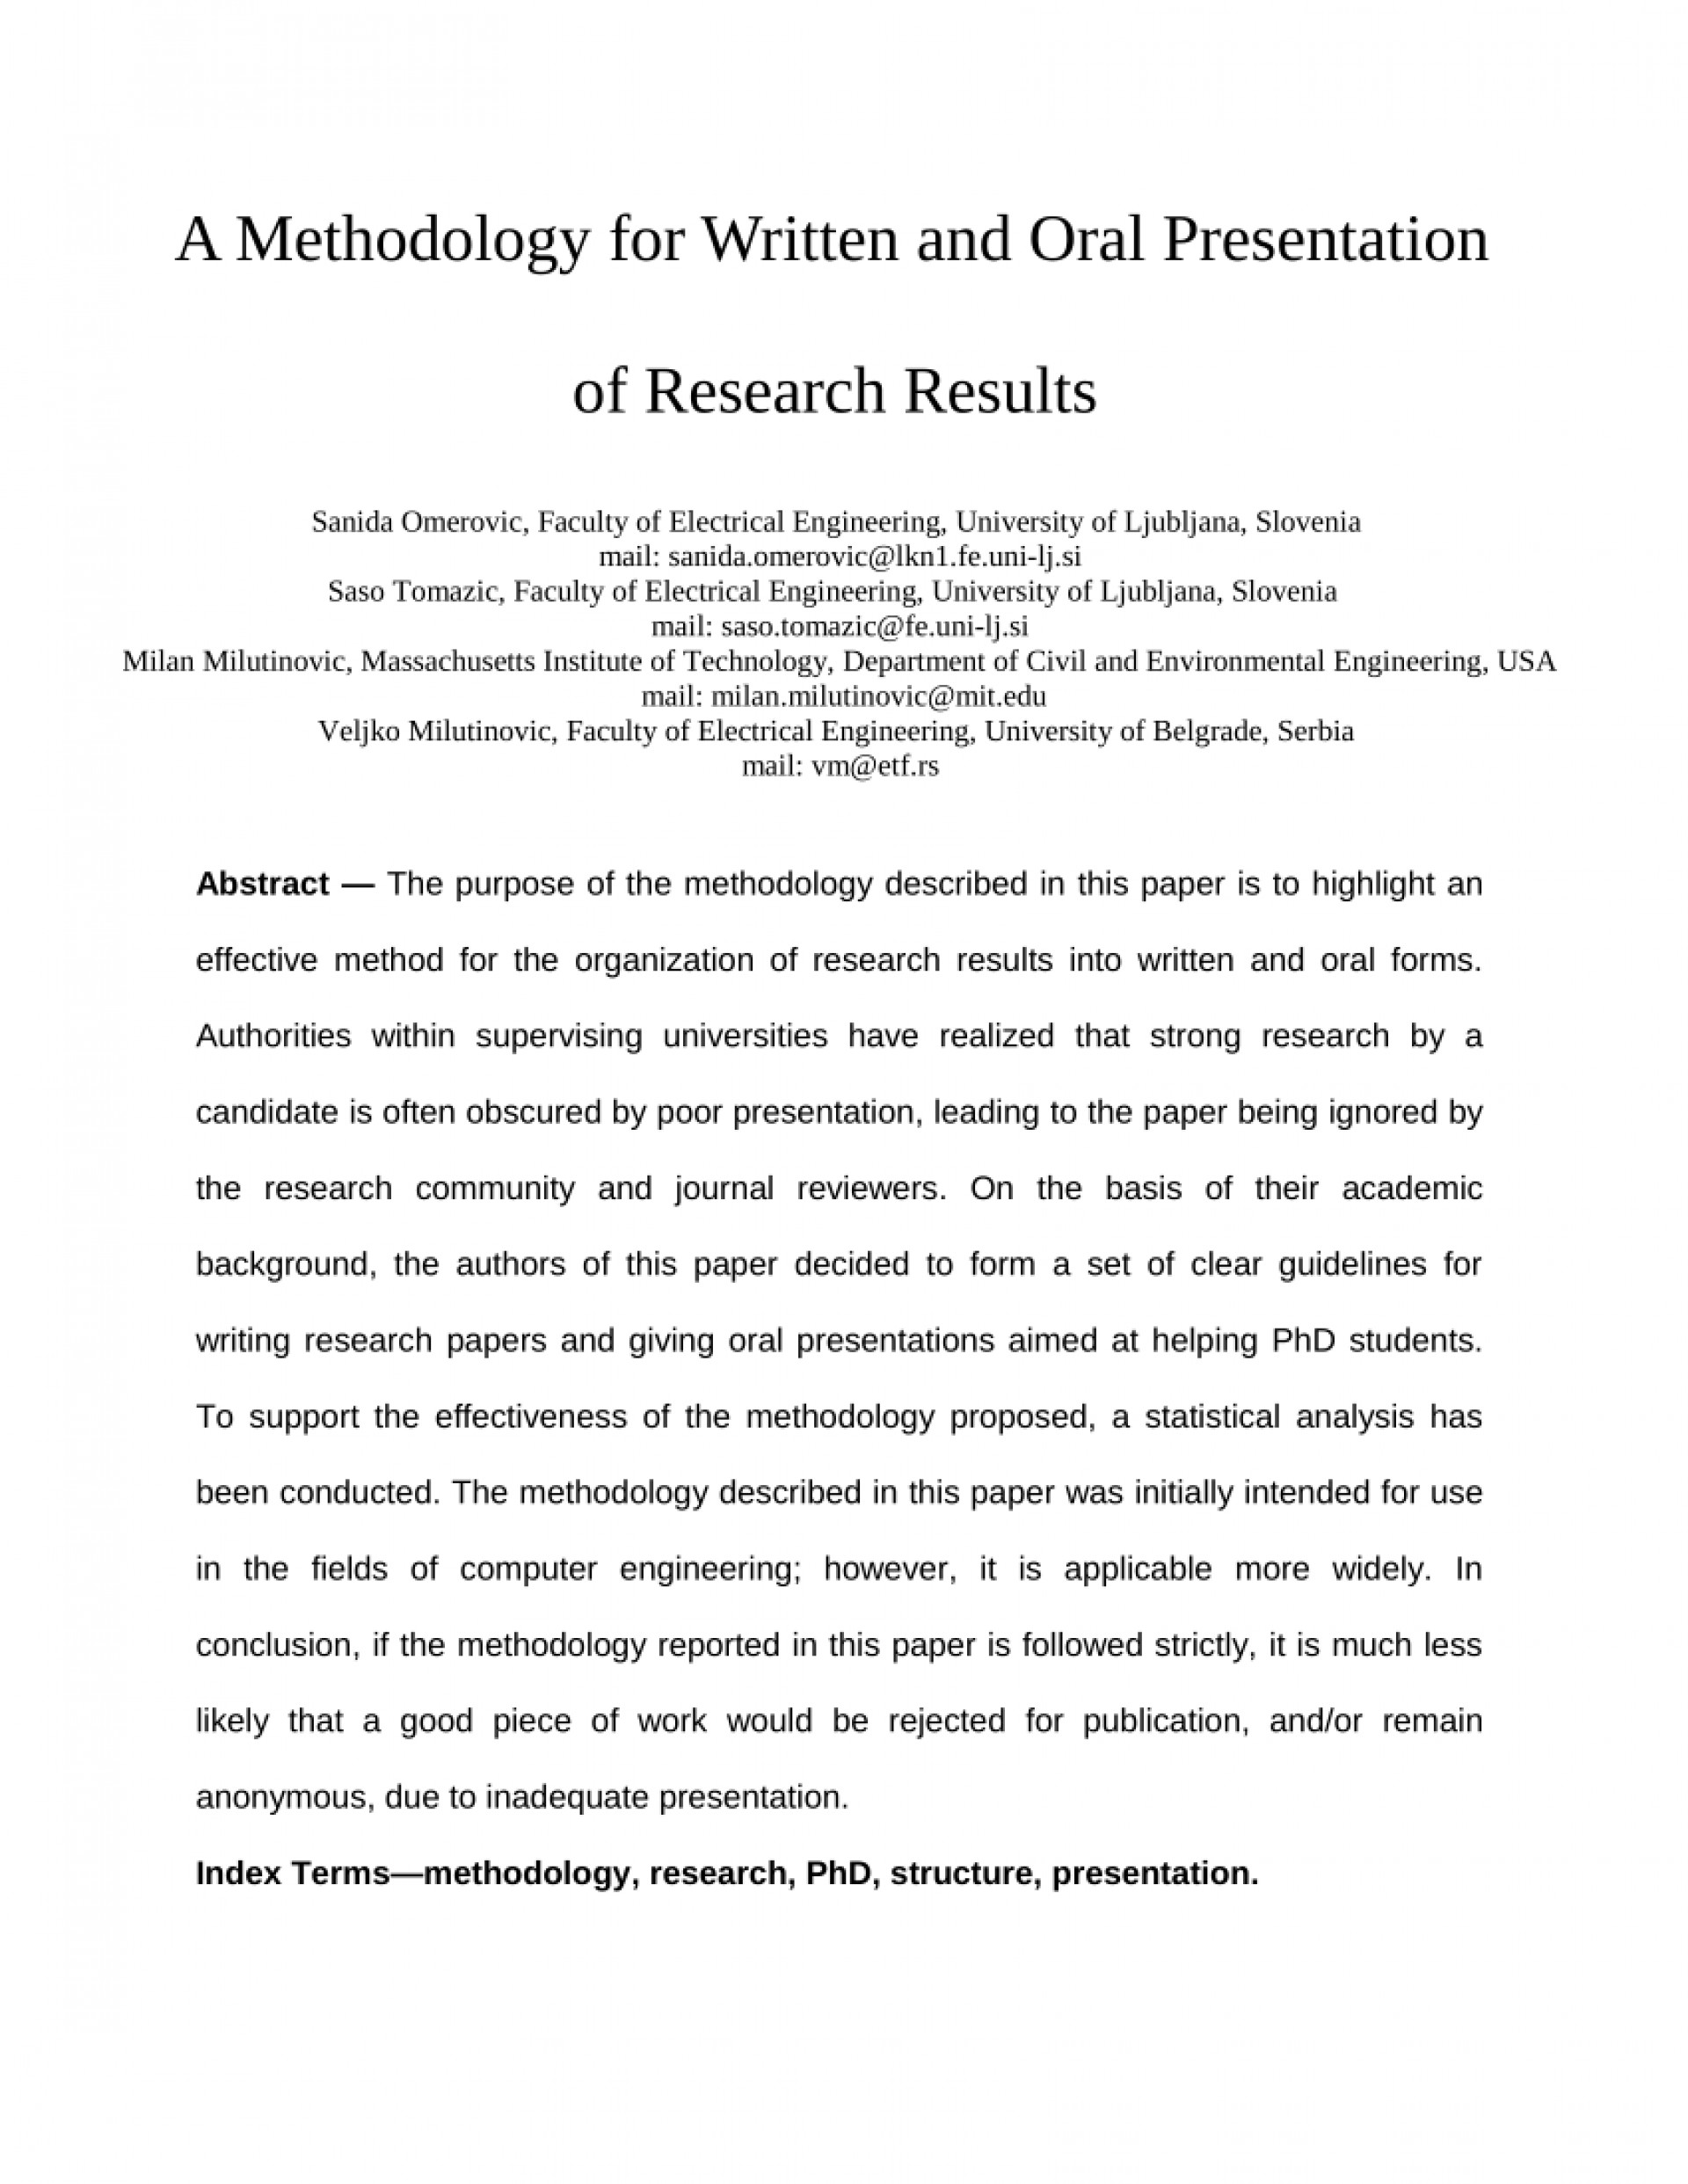 001 Methodology Research Paper Remarkable Topics Pattern Exam Pdf 1920